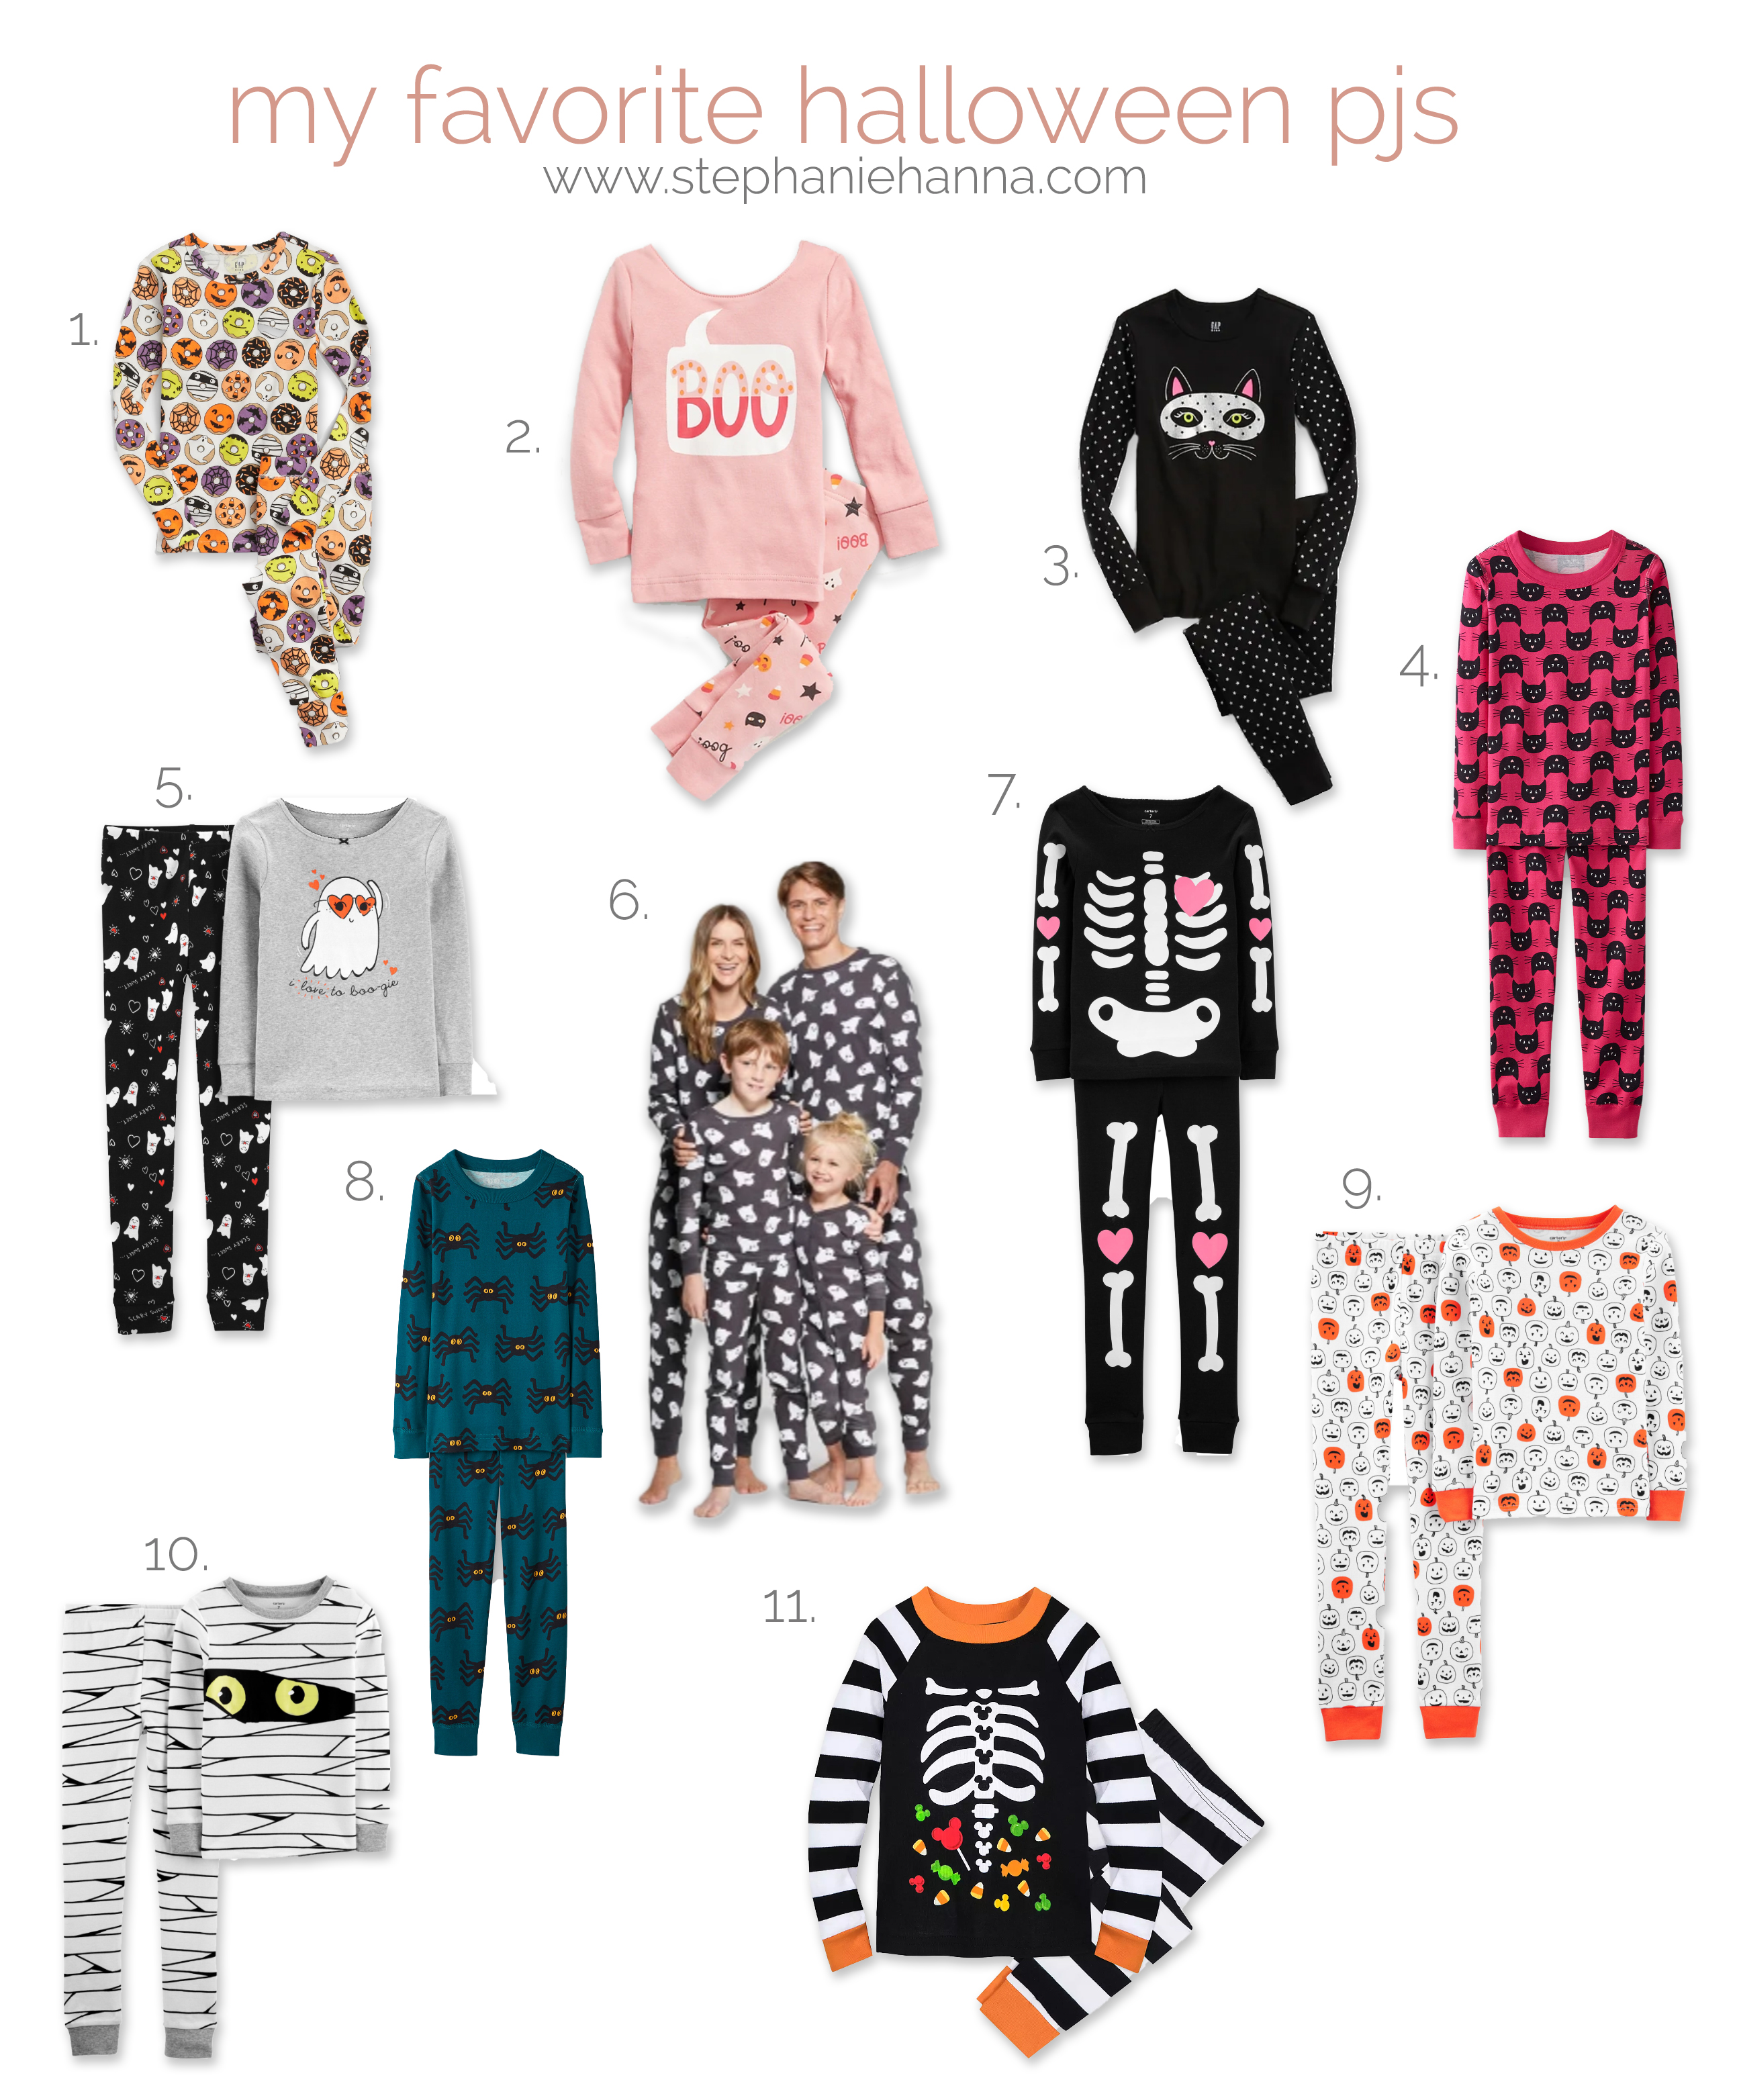 Cozy Halloween Pajamas for kids and the whole family